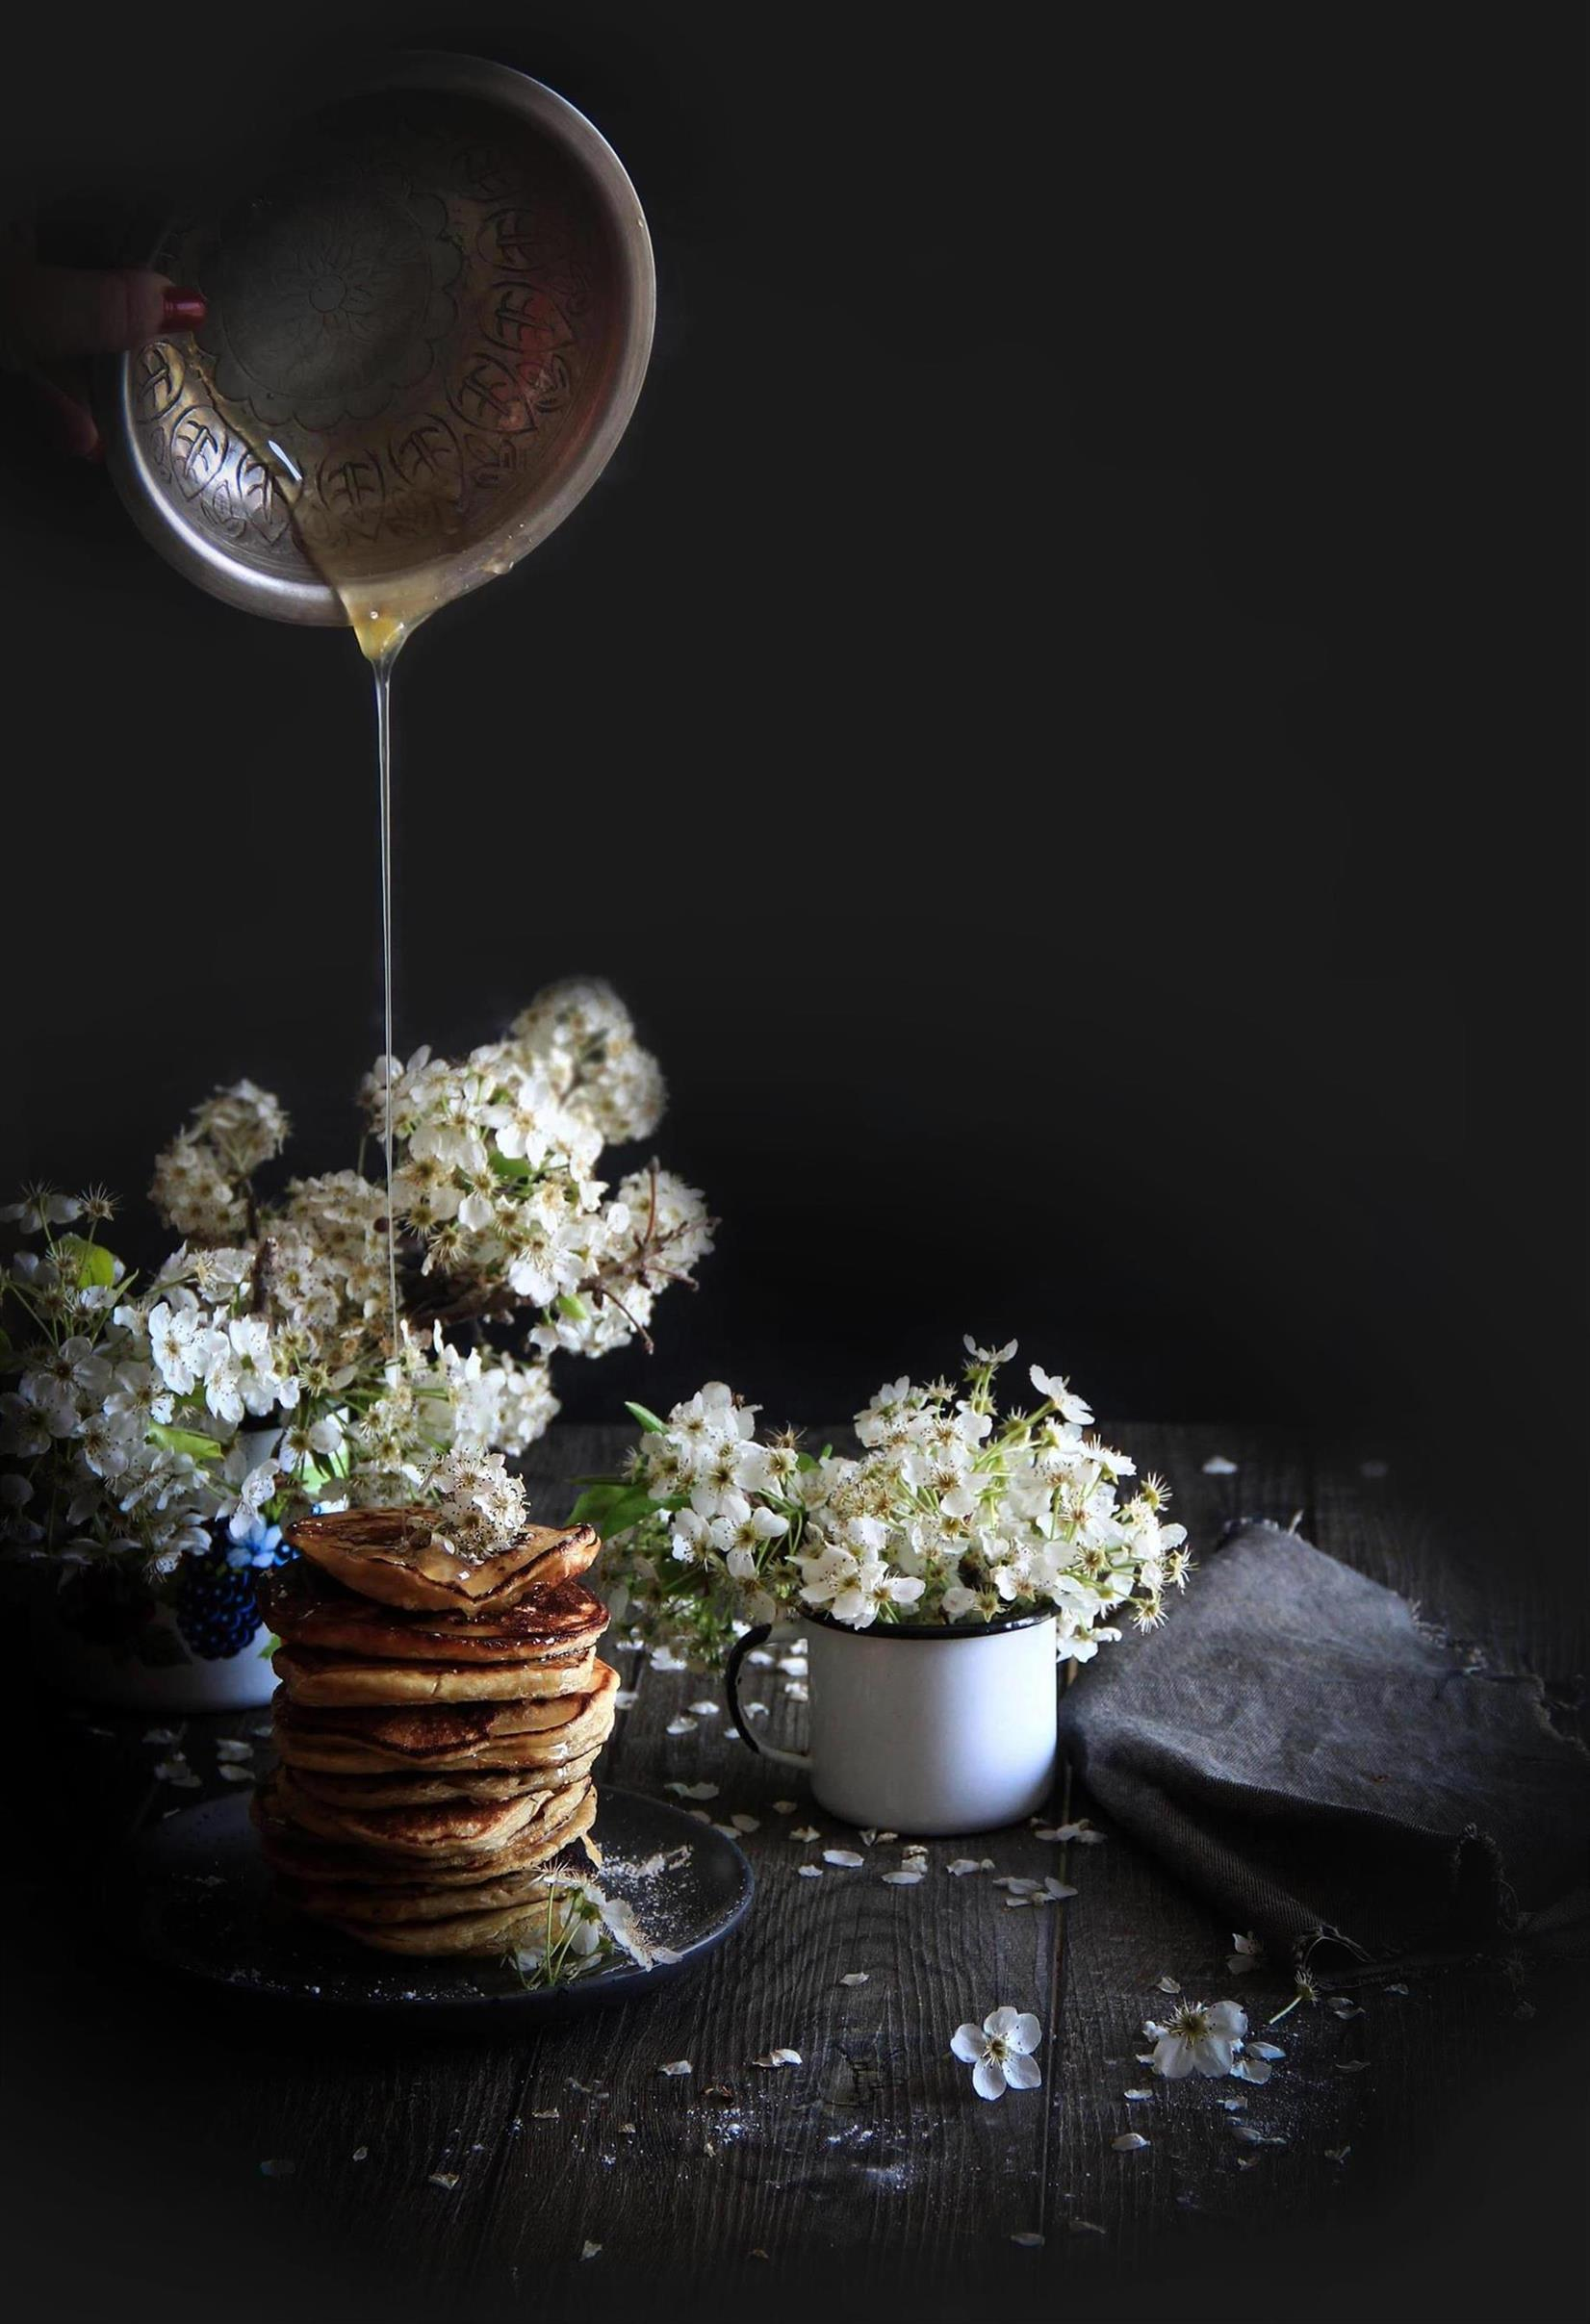 Once upon a time milly kay food blog quark cheese pancakes once upon a time milly kay food blog quark cheese pancake ccuart Images